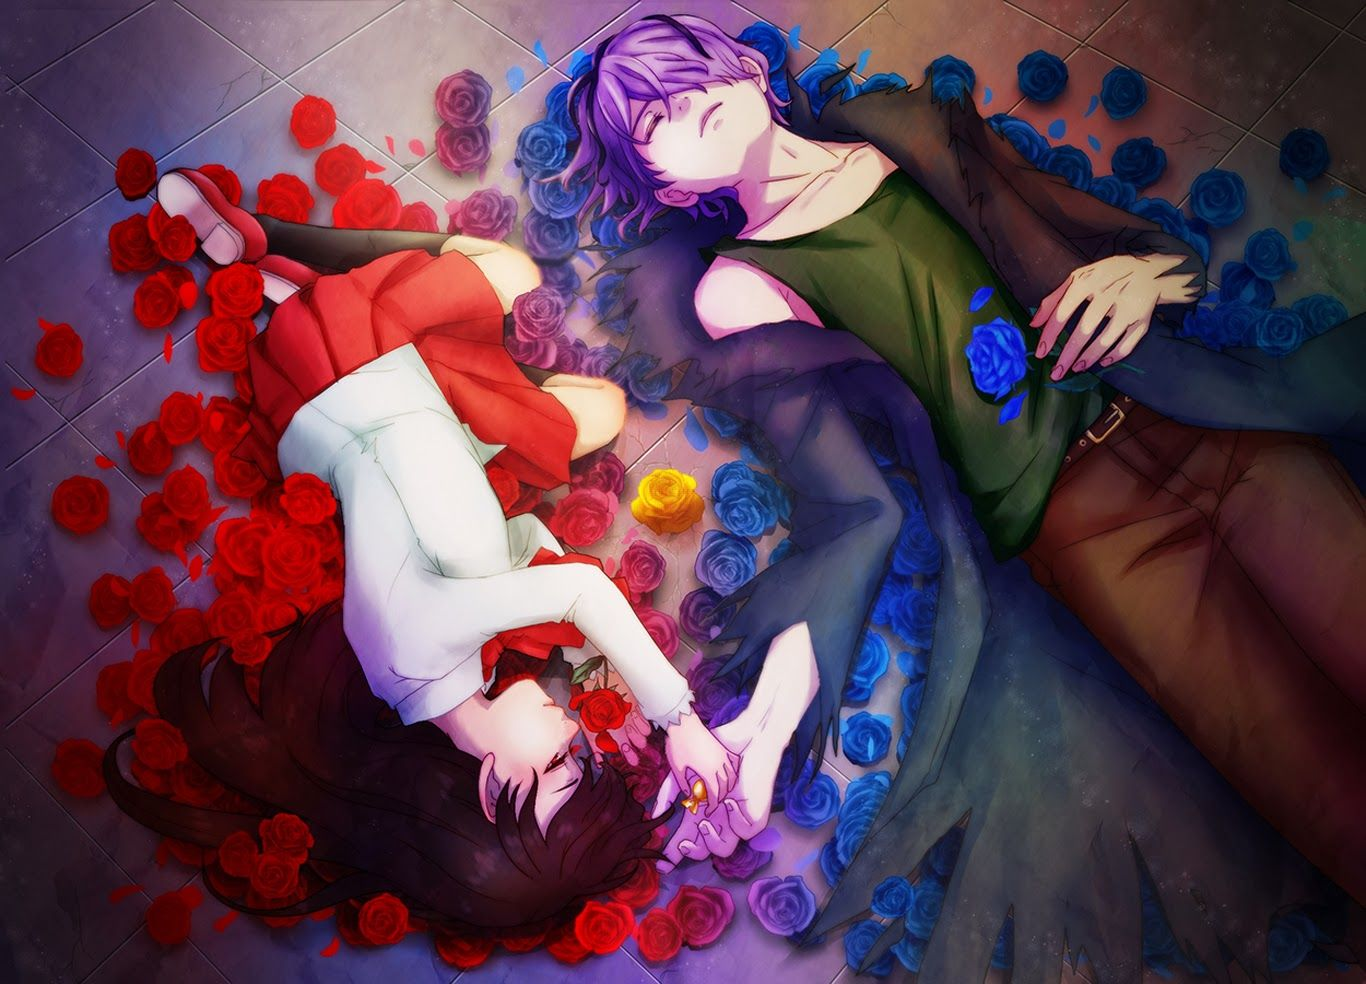 Hd wallpapers flowers hd wallpapers for pc anime ib game